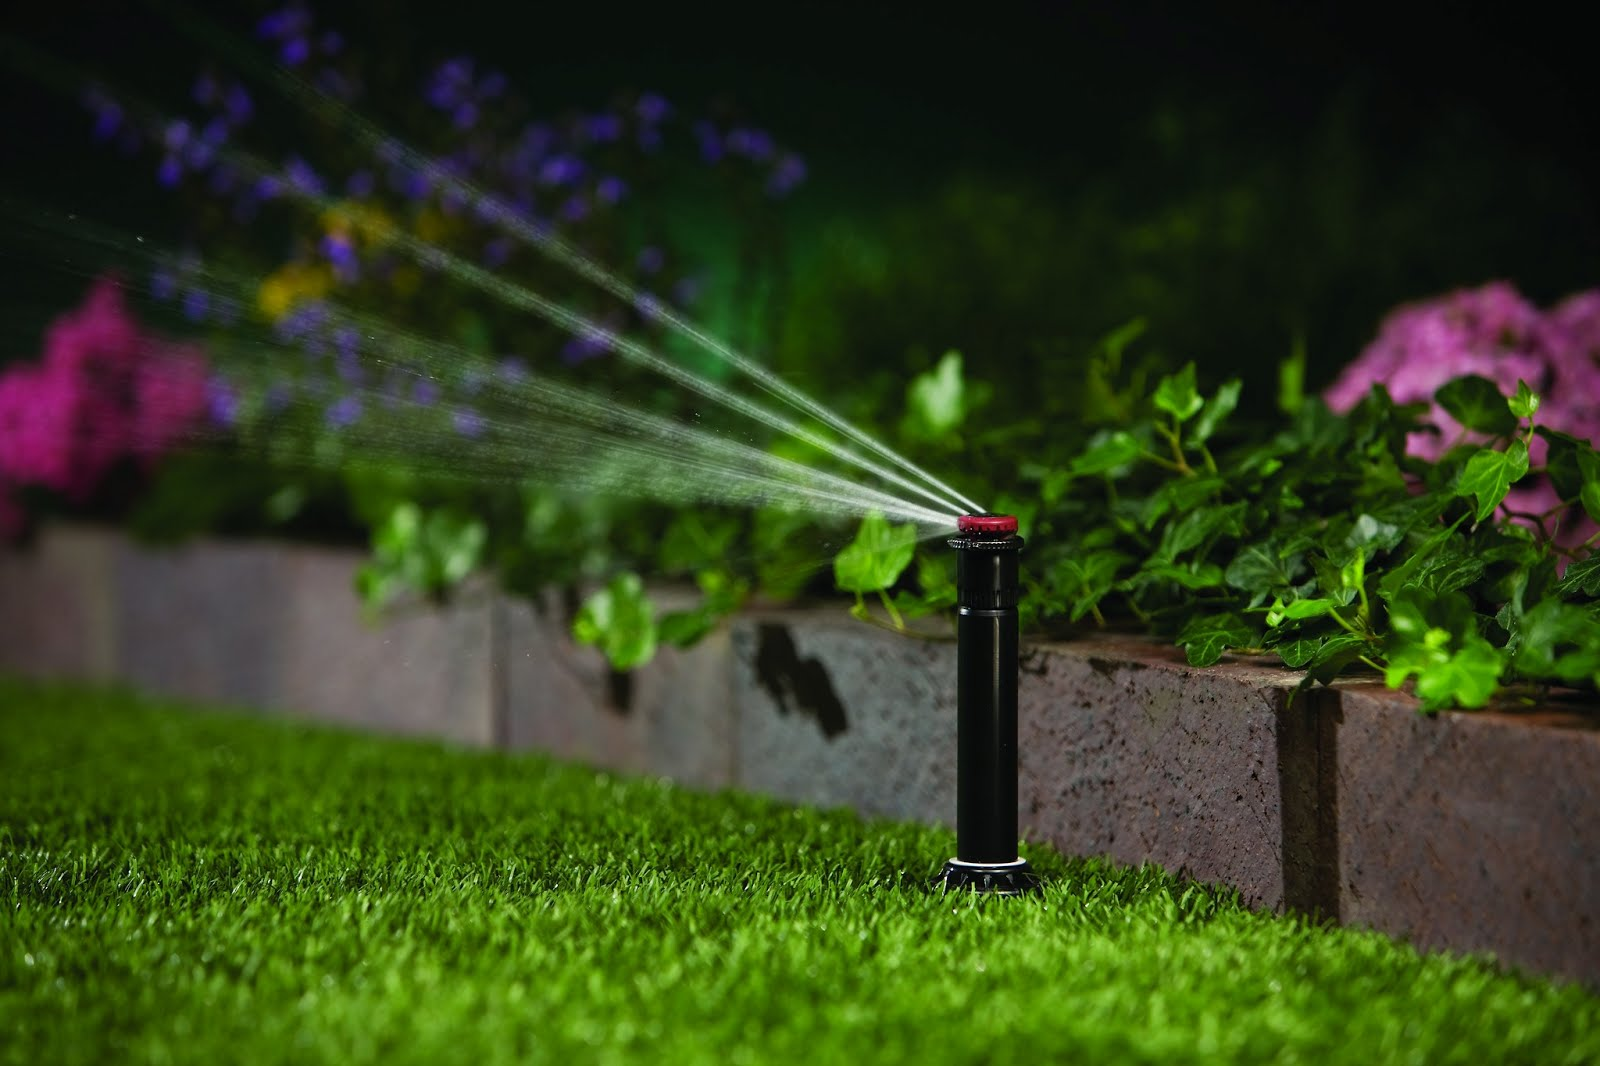 Sprinkler Services-Frisco TX Professional Landscapers & Outdoor Living Designs-We offer Landscape Design, Outdoor Patios & Pergolas, Outdoor Living Spaces, Stonescapes, Residential & Commercial Landscaping, Irrigation Installation & Repairs, Drainage Systems, Landscape Lighting, Outdoor Living Spaces, Tree Service, Lawn Service, and more.